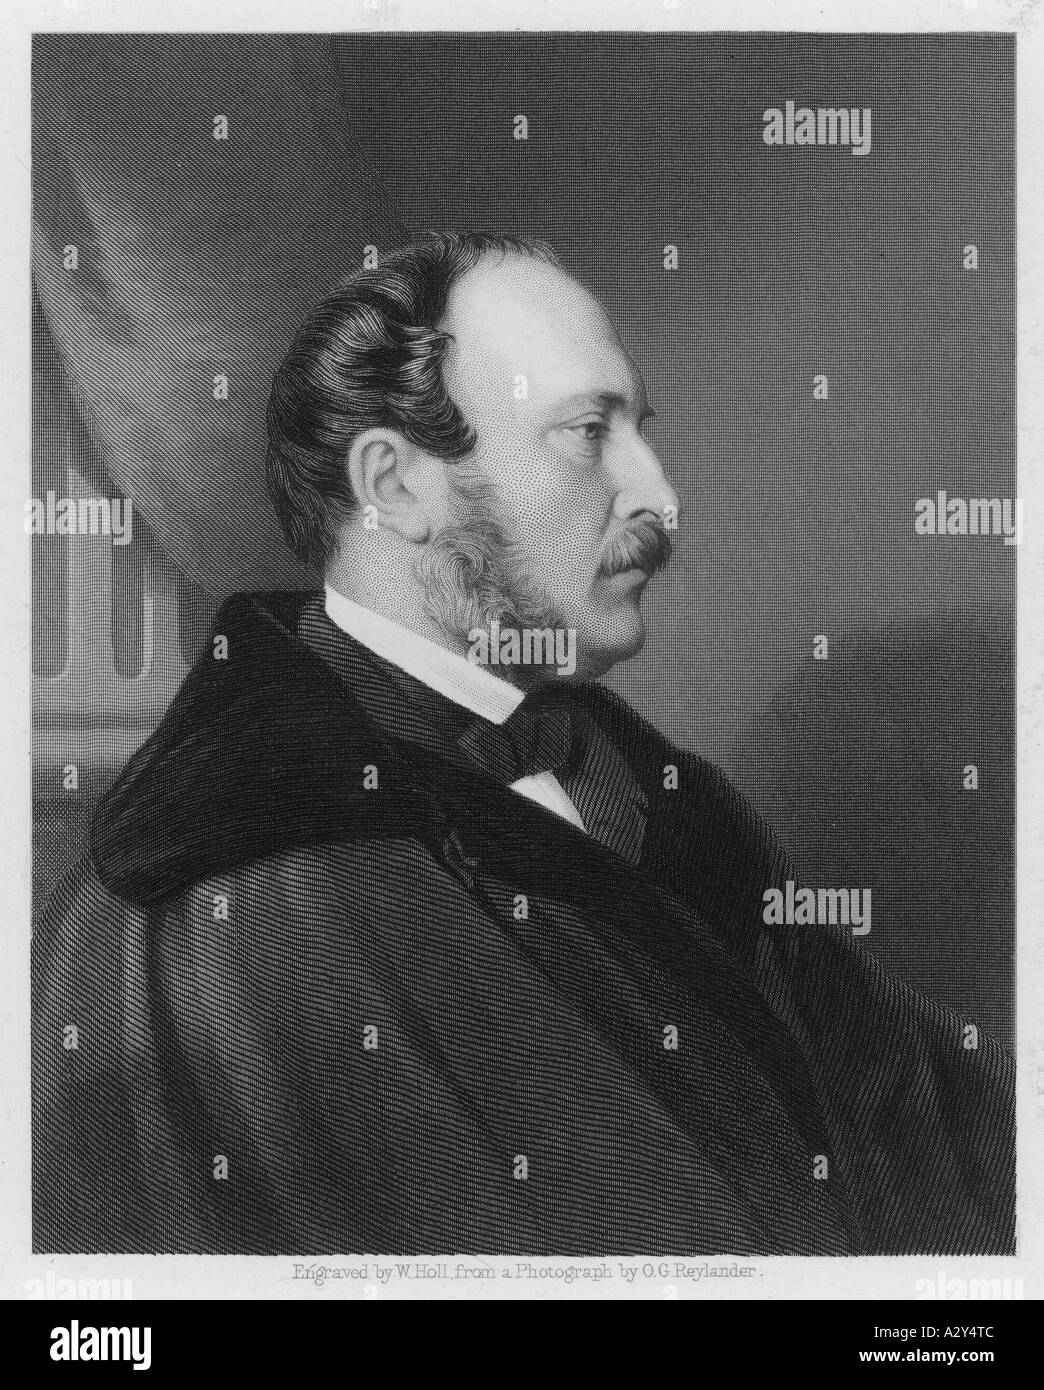 prince albert black personals On december 14, 1861, her husband of 21 years, prince albert, died at the age  of just 42 she never got over his death, and dressed in black.